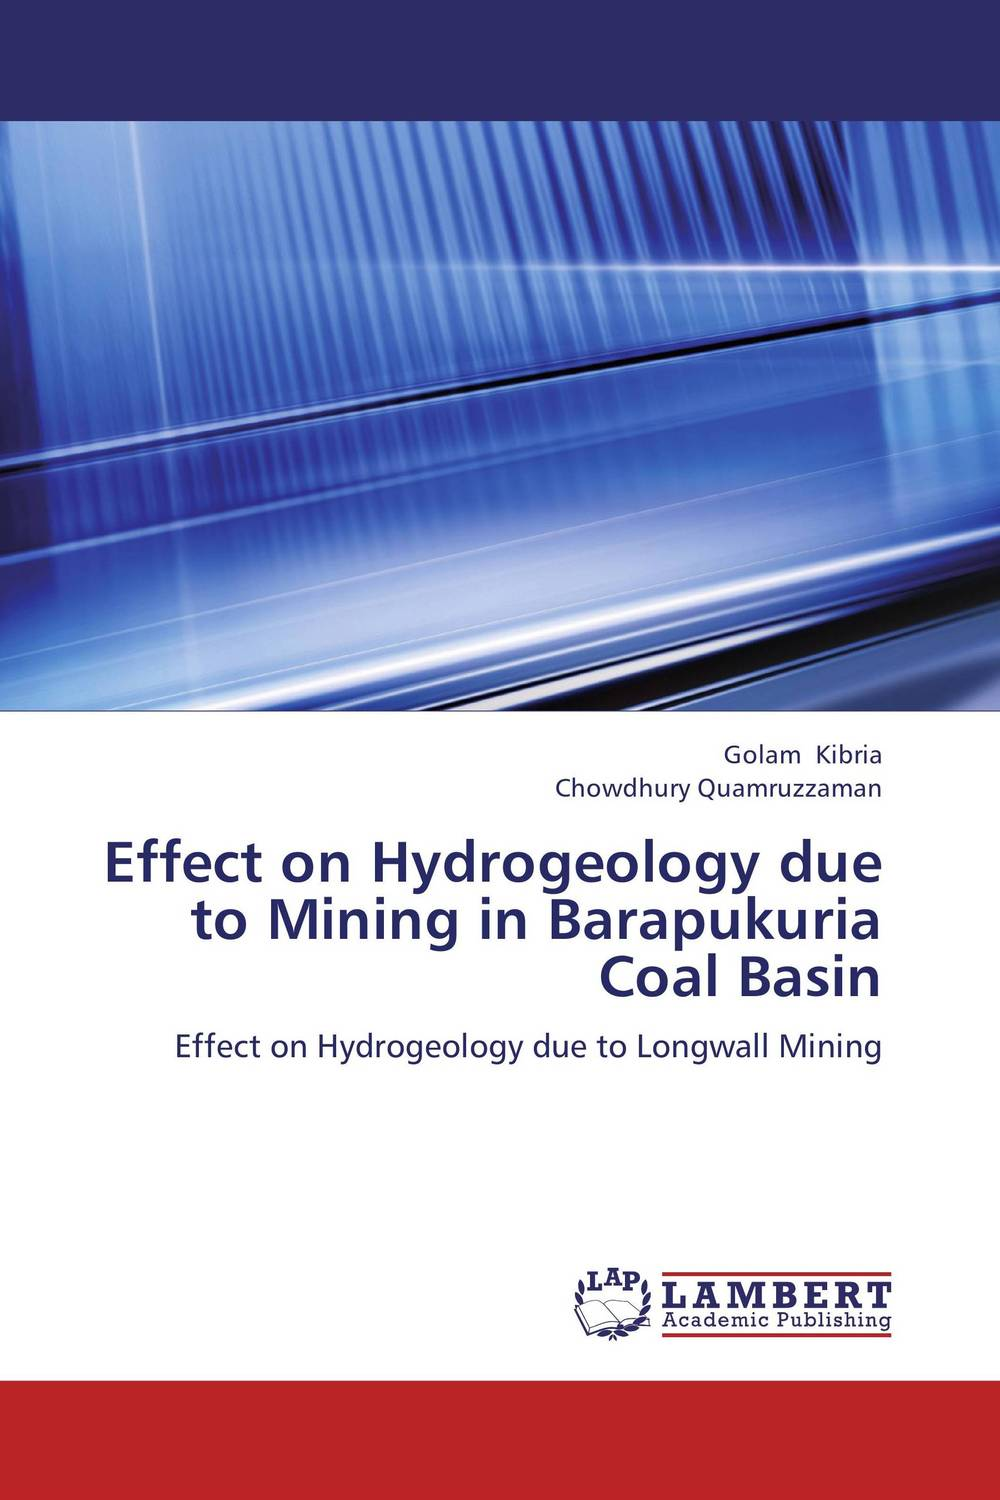 Effect on Hydrogeology due to Mining in Barapukuria Coal Basin tobias olweny and kenedy omondi the effect of macro economic factors on stock return volatility at nse